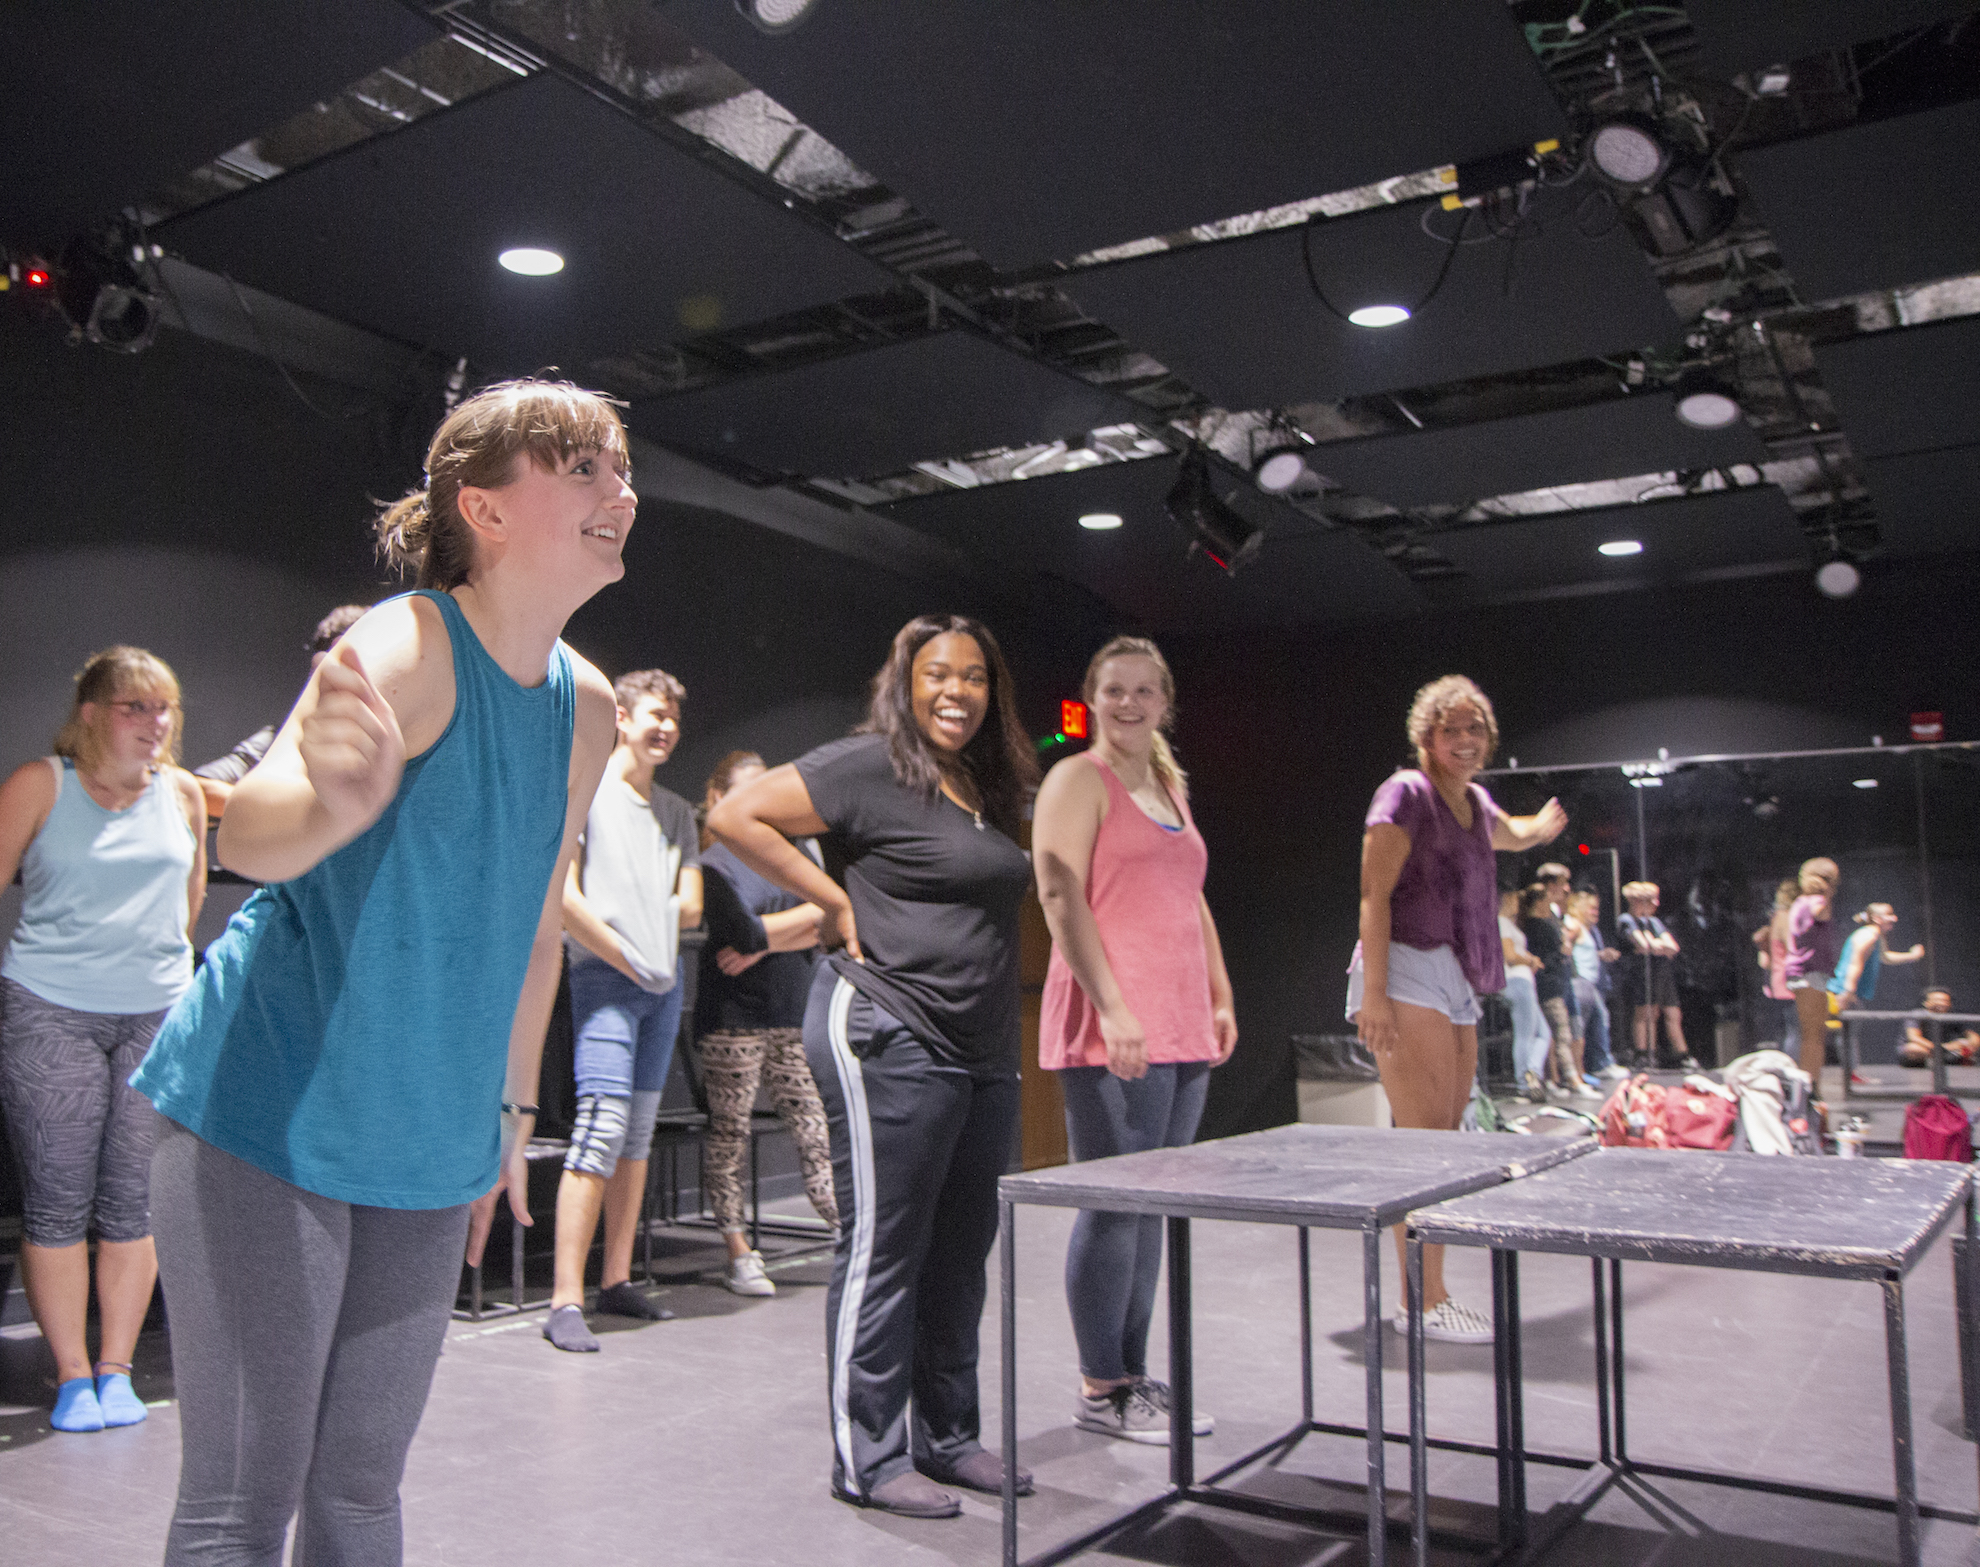 A student stands in a studio rehearsing a play.